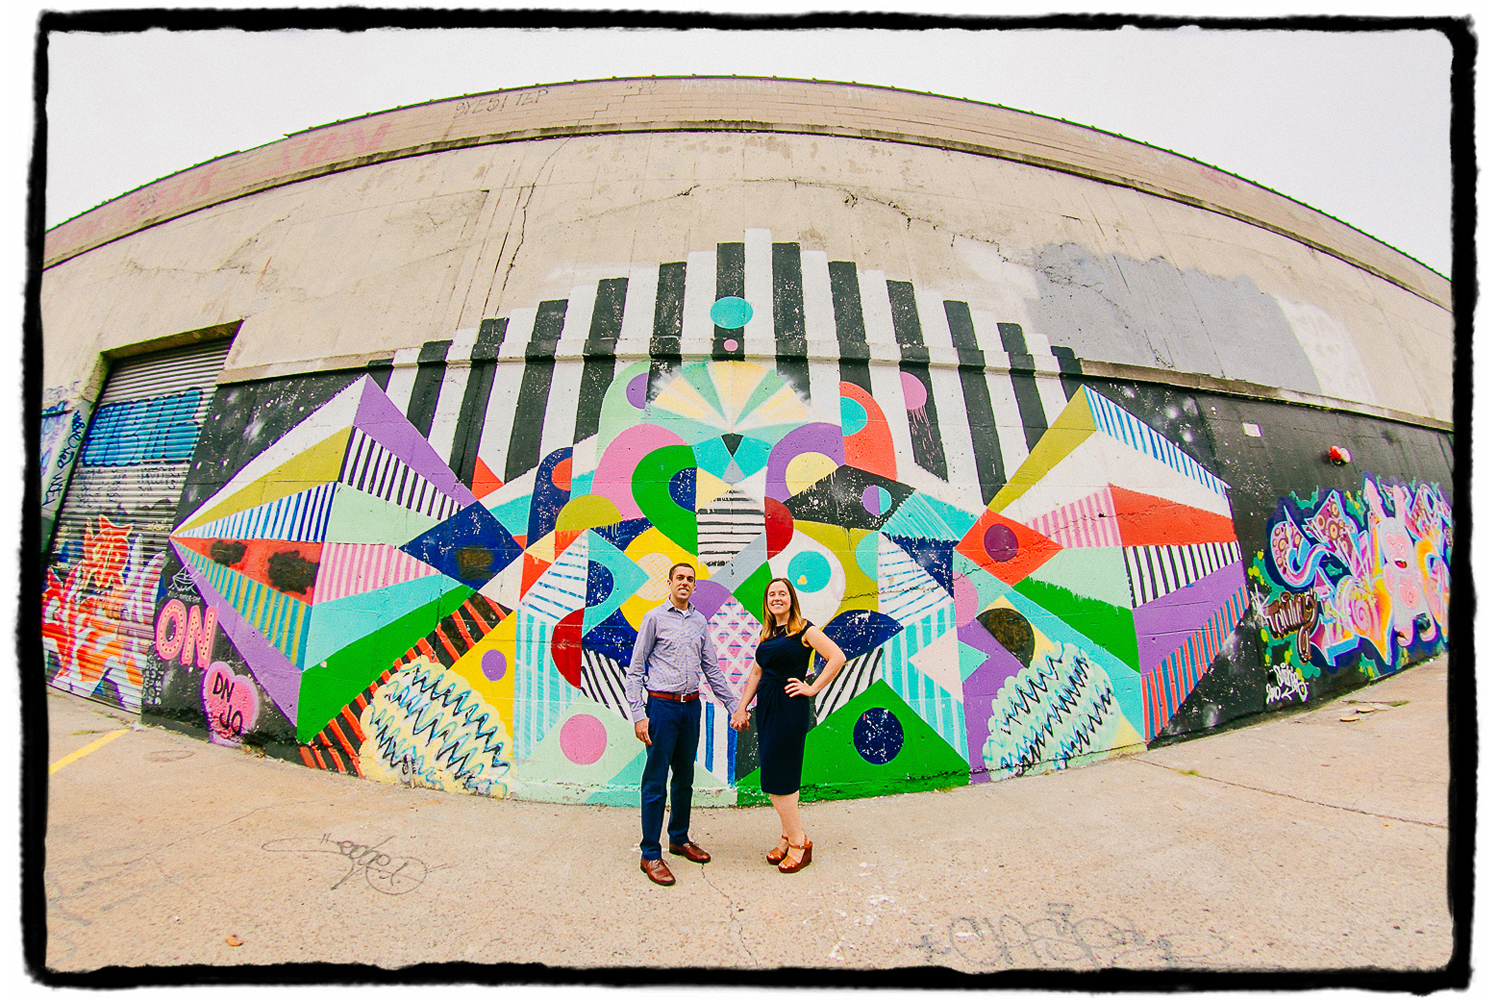 Engagement Portrait: Jessie & Steve let me immortalize them through a fisheye lens with the street art in Greenpoint, Brooklyn.